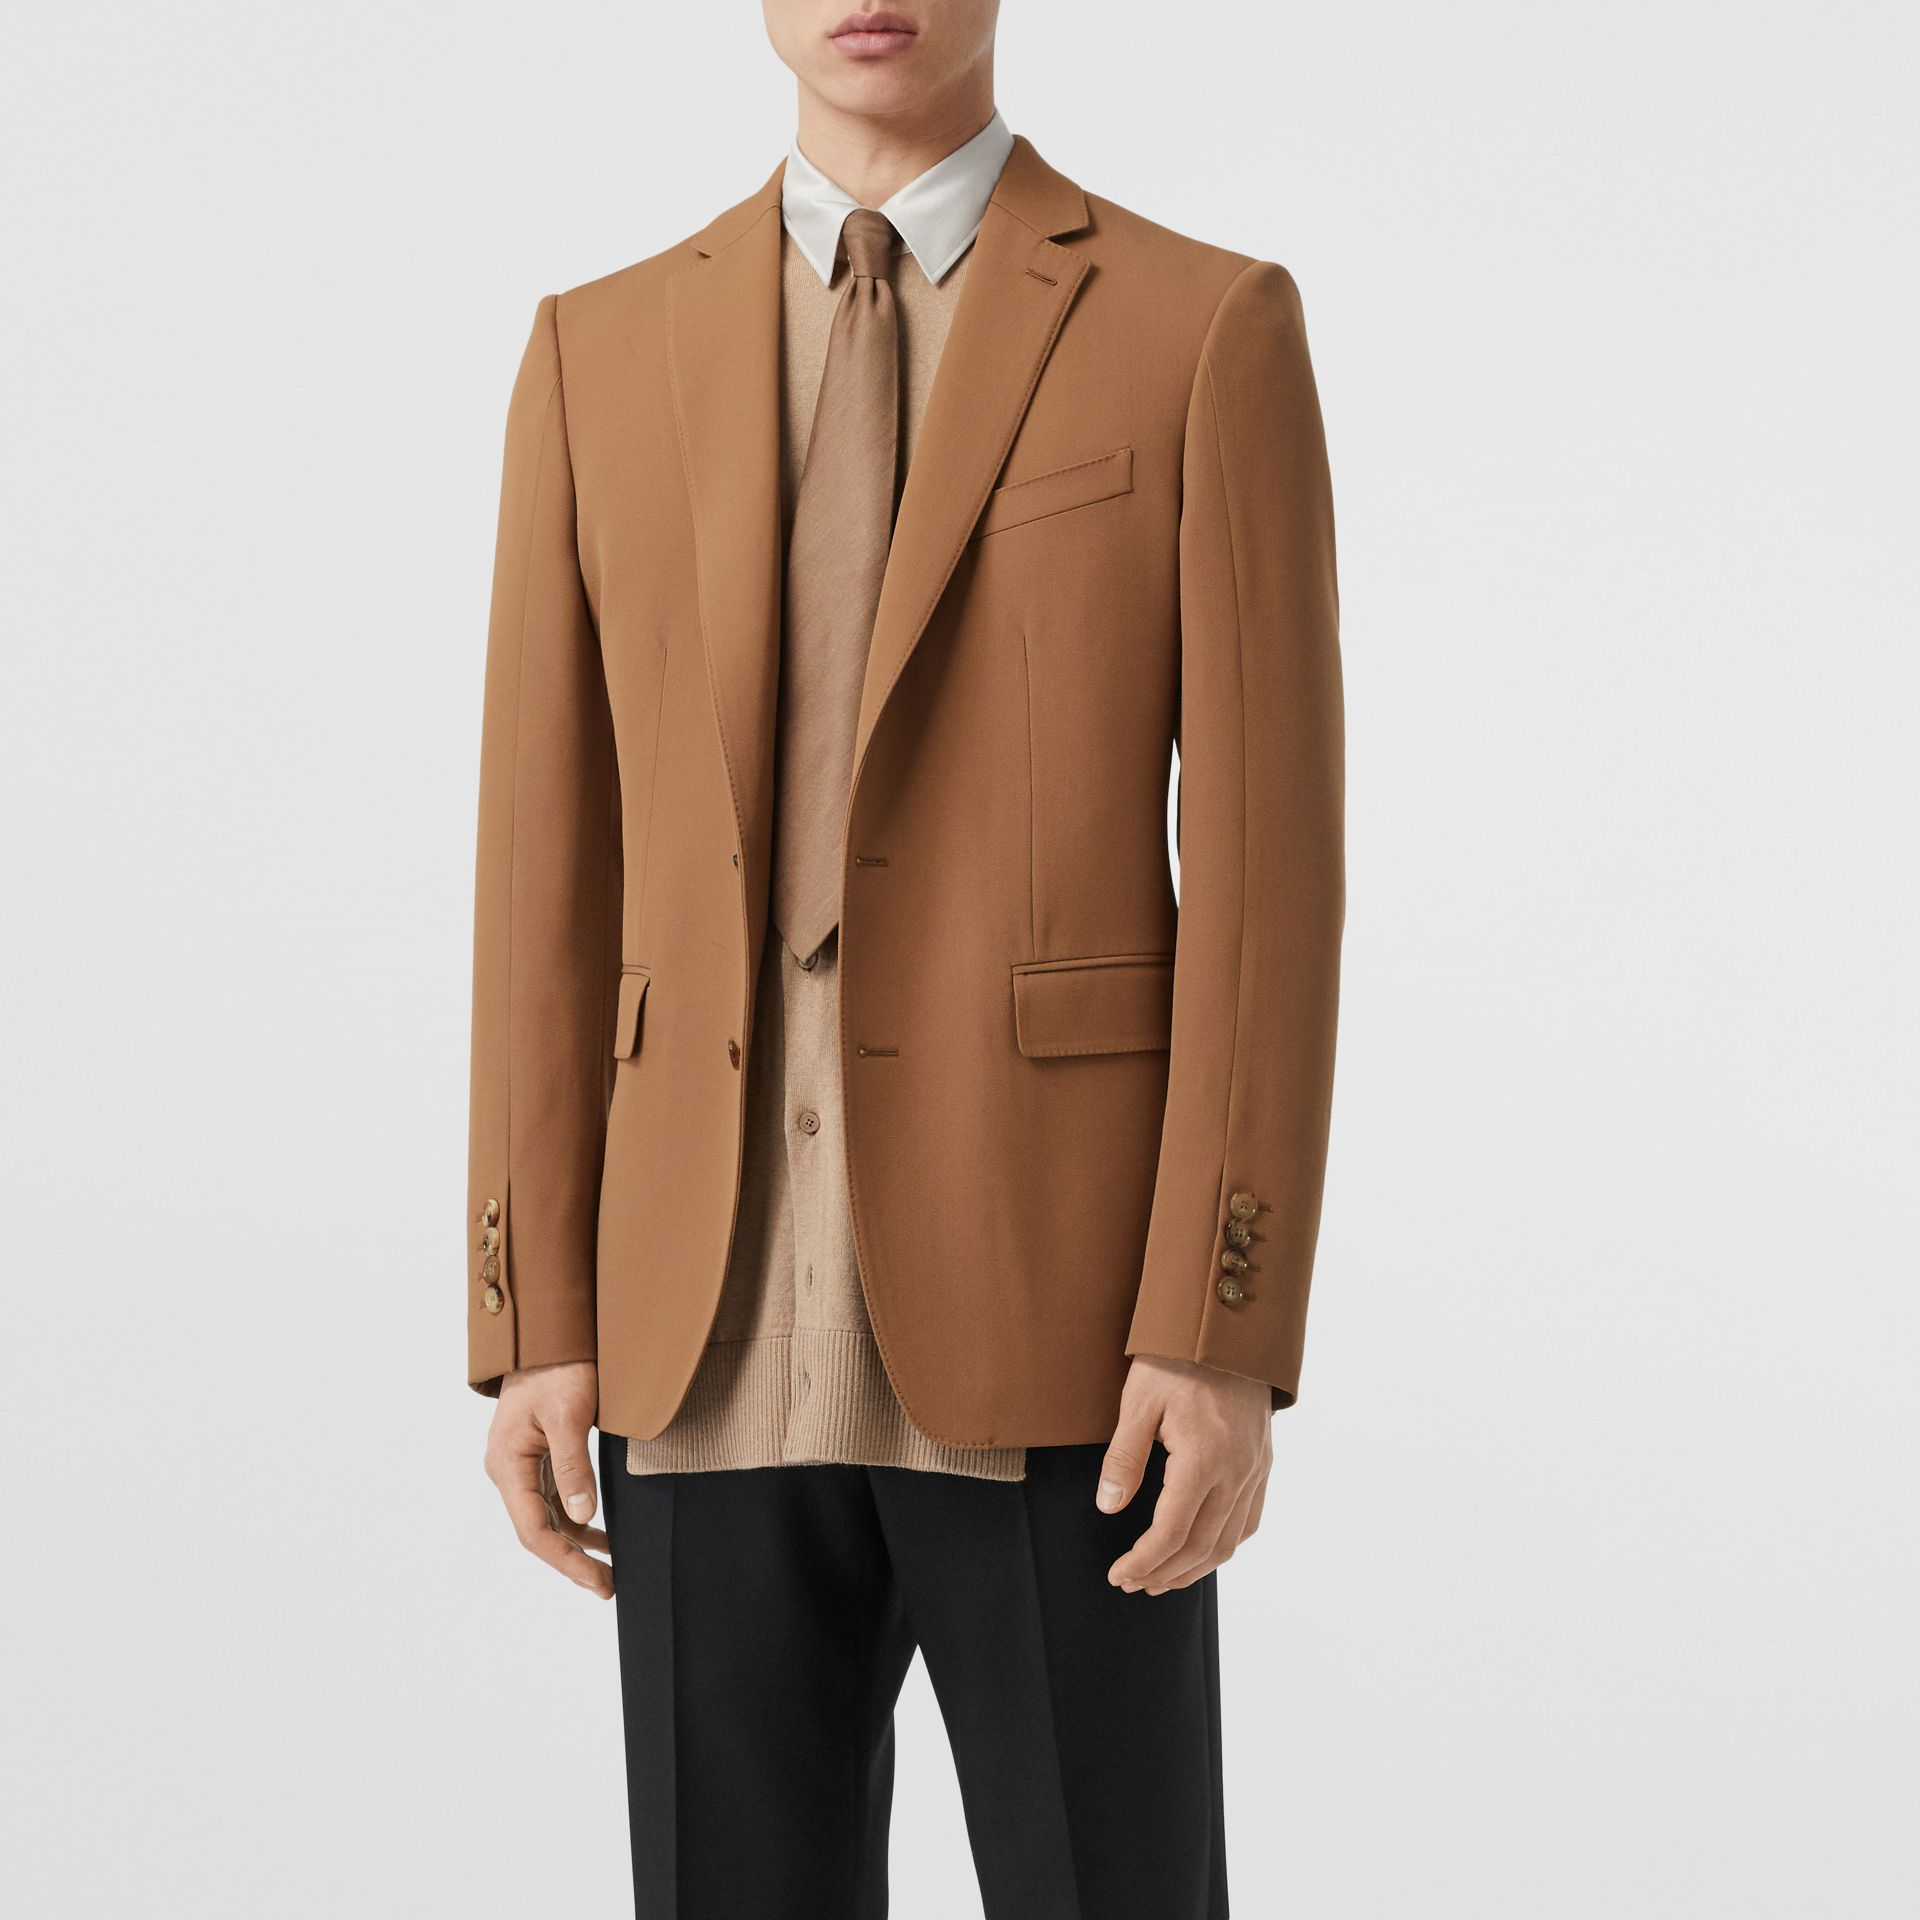 Camel Hair Coat with Detachable Wool Jacket in Warm - Men | Burberry - gallery image 4